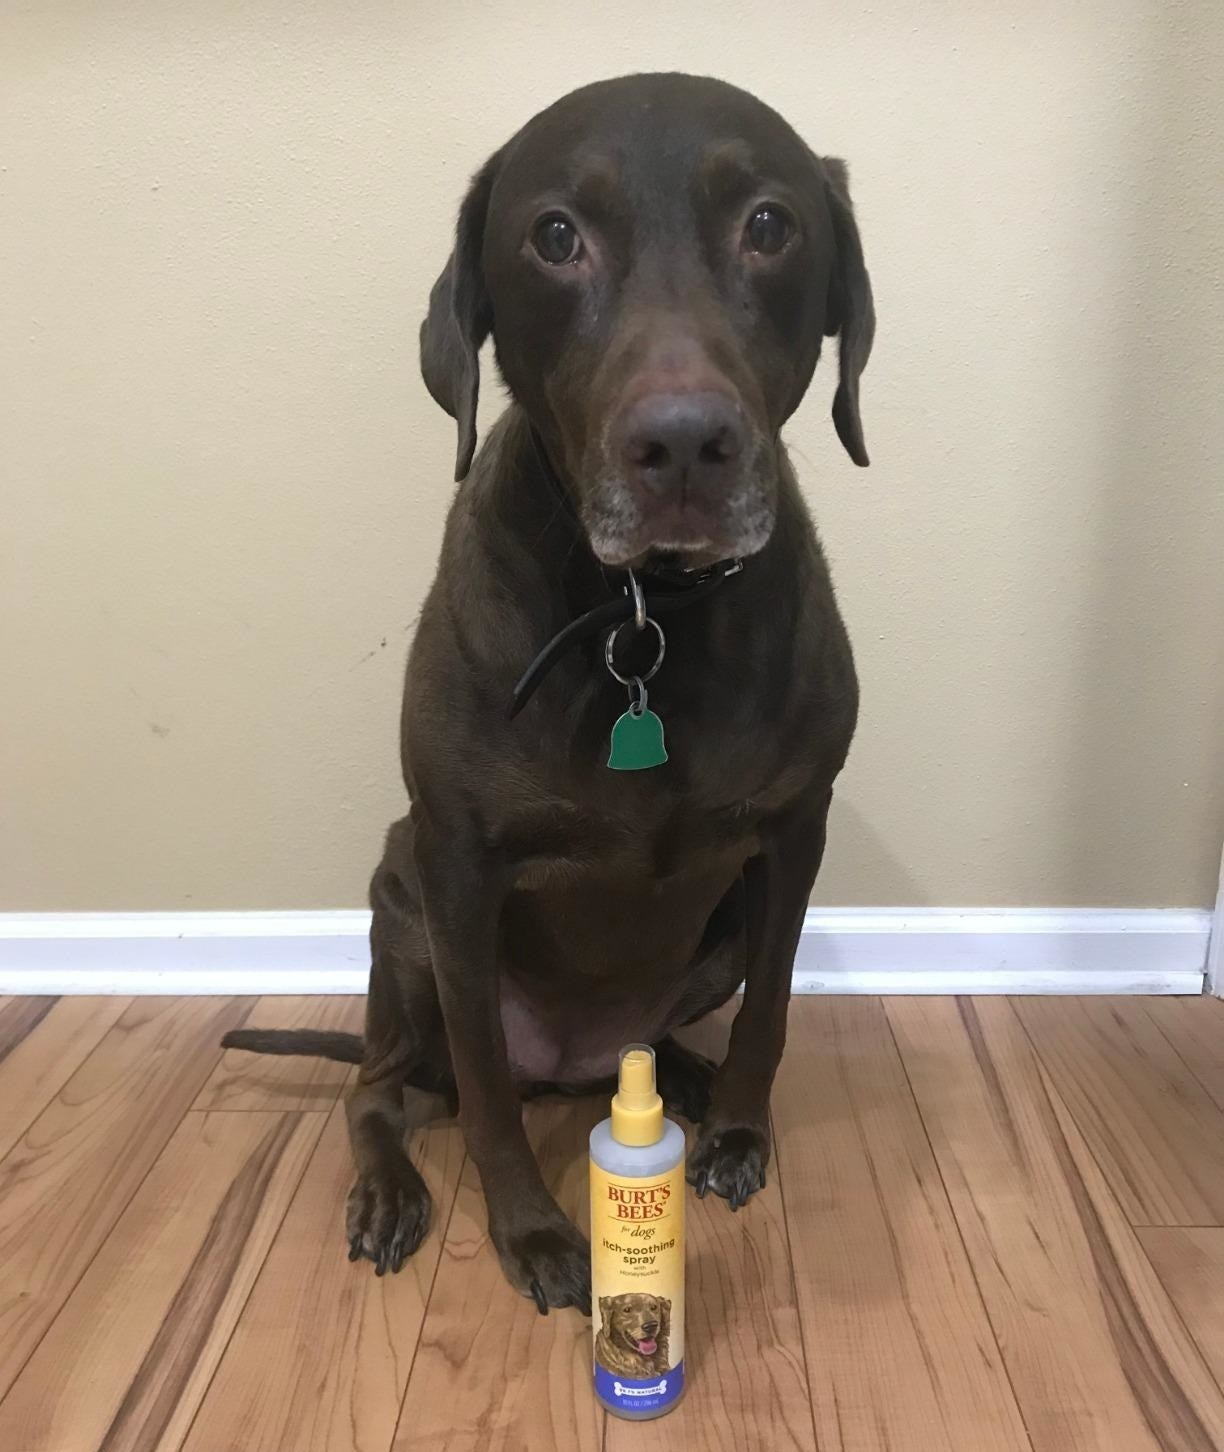 Reviewer's dog sitting next to the spray bottle